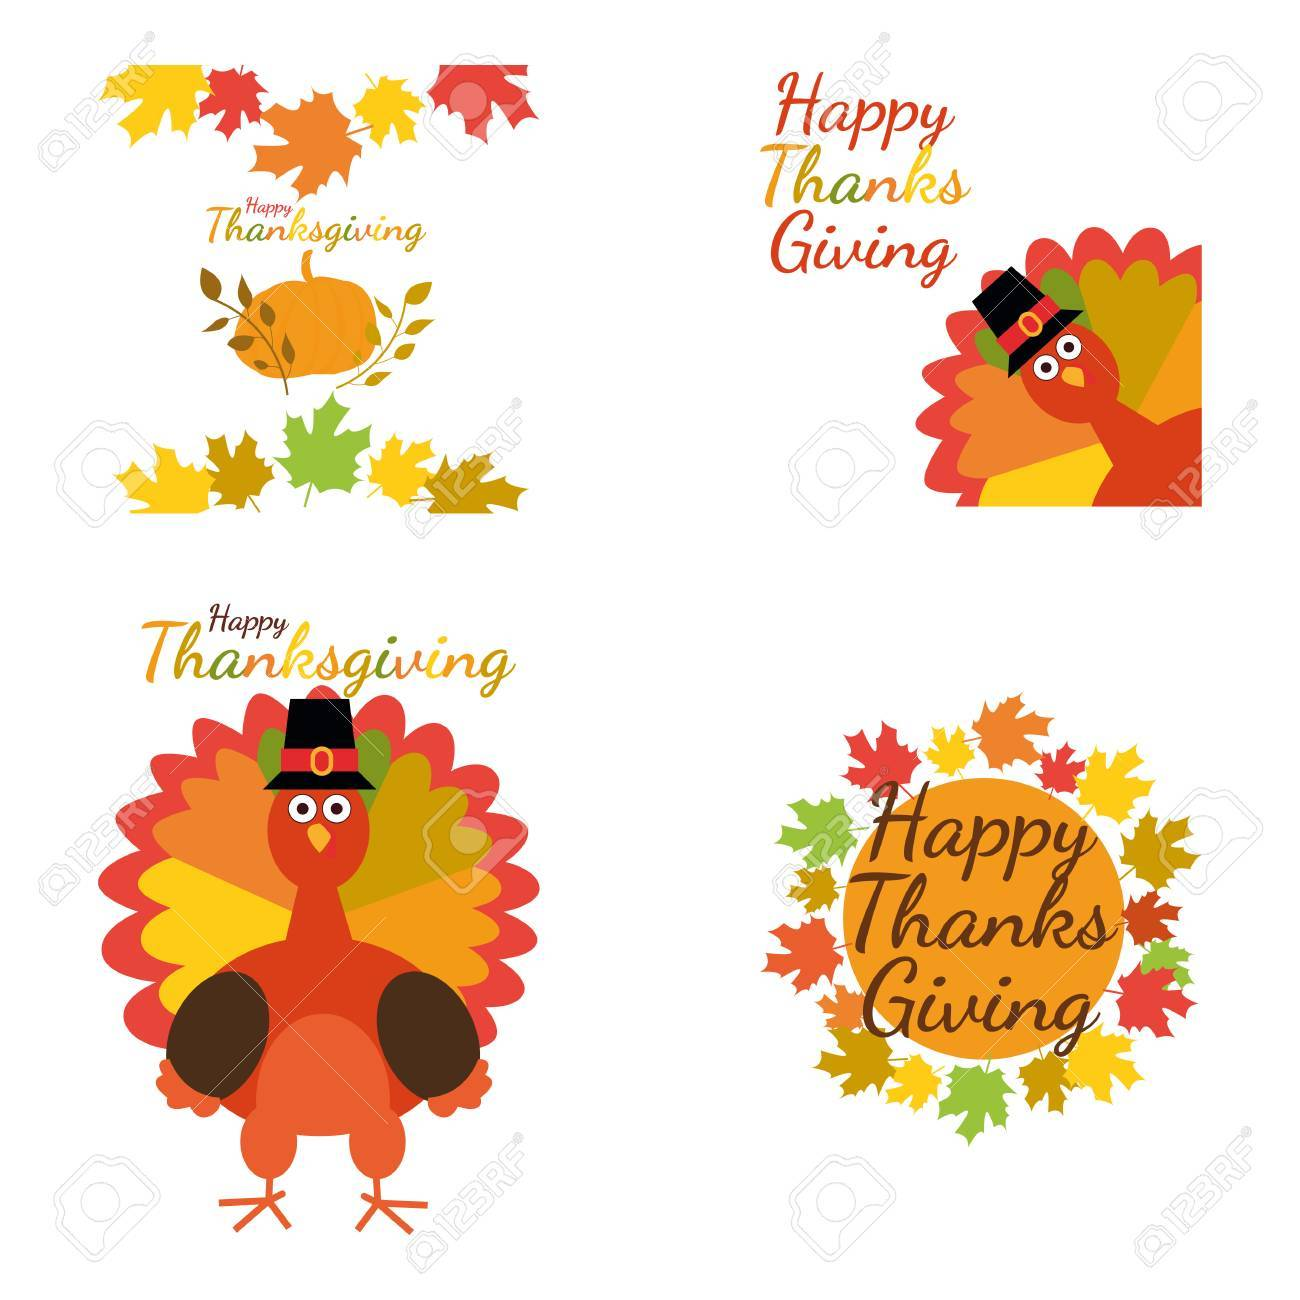 Happy Thanksgiving Set Greeting Card With Funny Cartoon Turkey